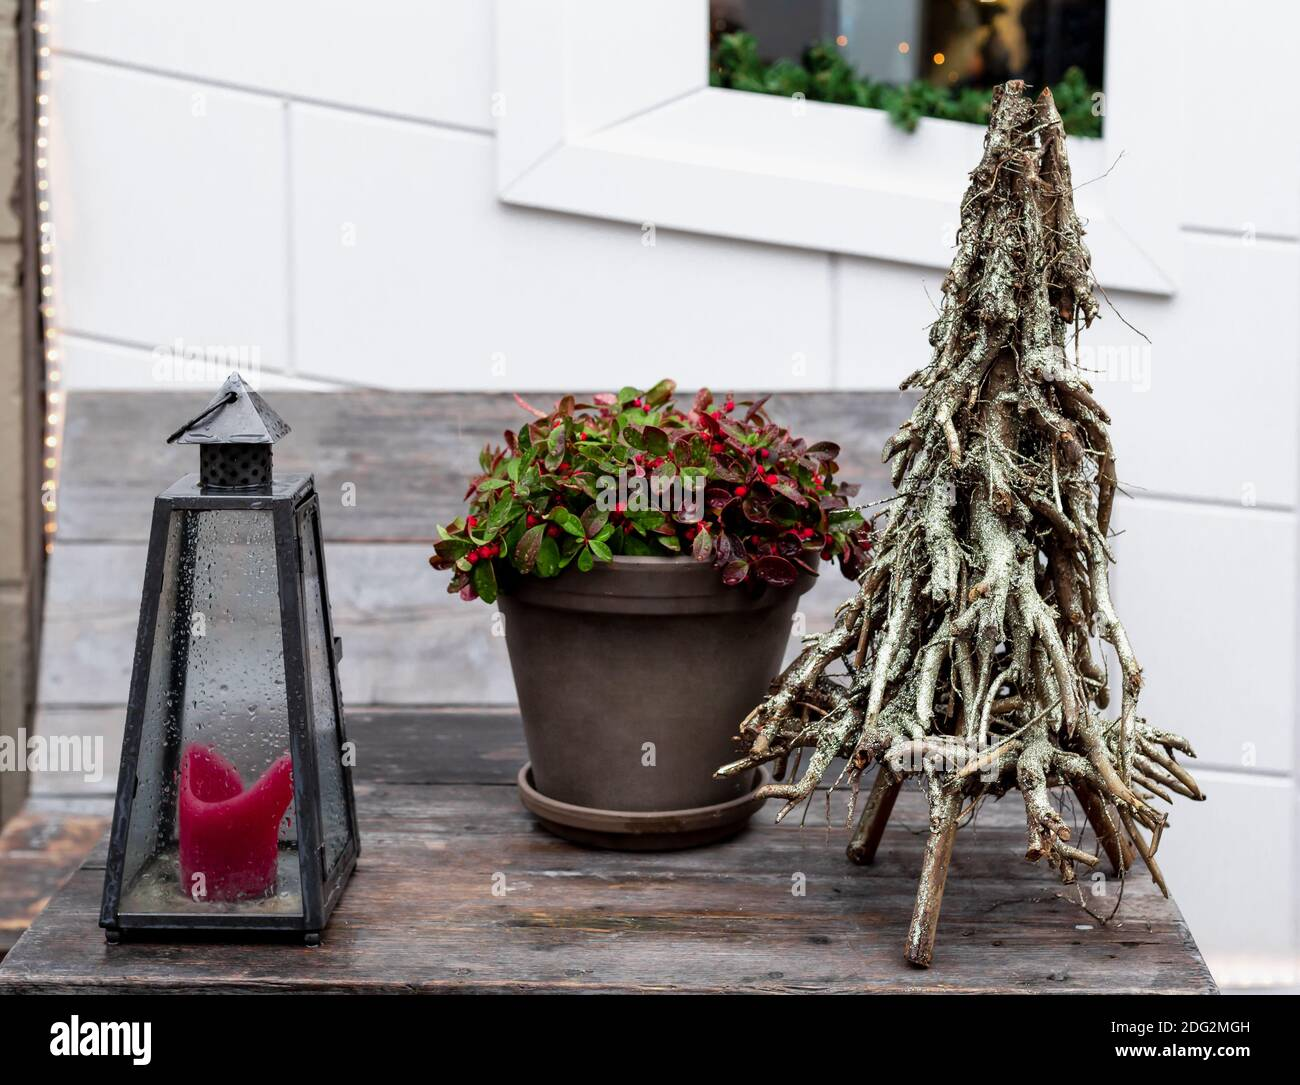 Christmas Red Berries Plant In Pot Creative Alternative Christmas Tree Made From Tree Branches And Street Candle Lamp On Wooden Table Outsiade Retro Stock Photo Alamy